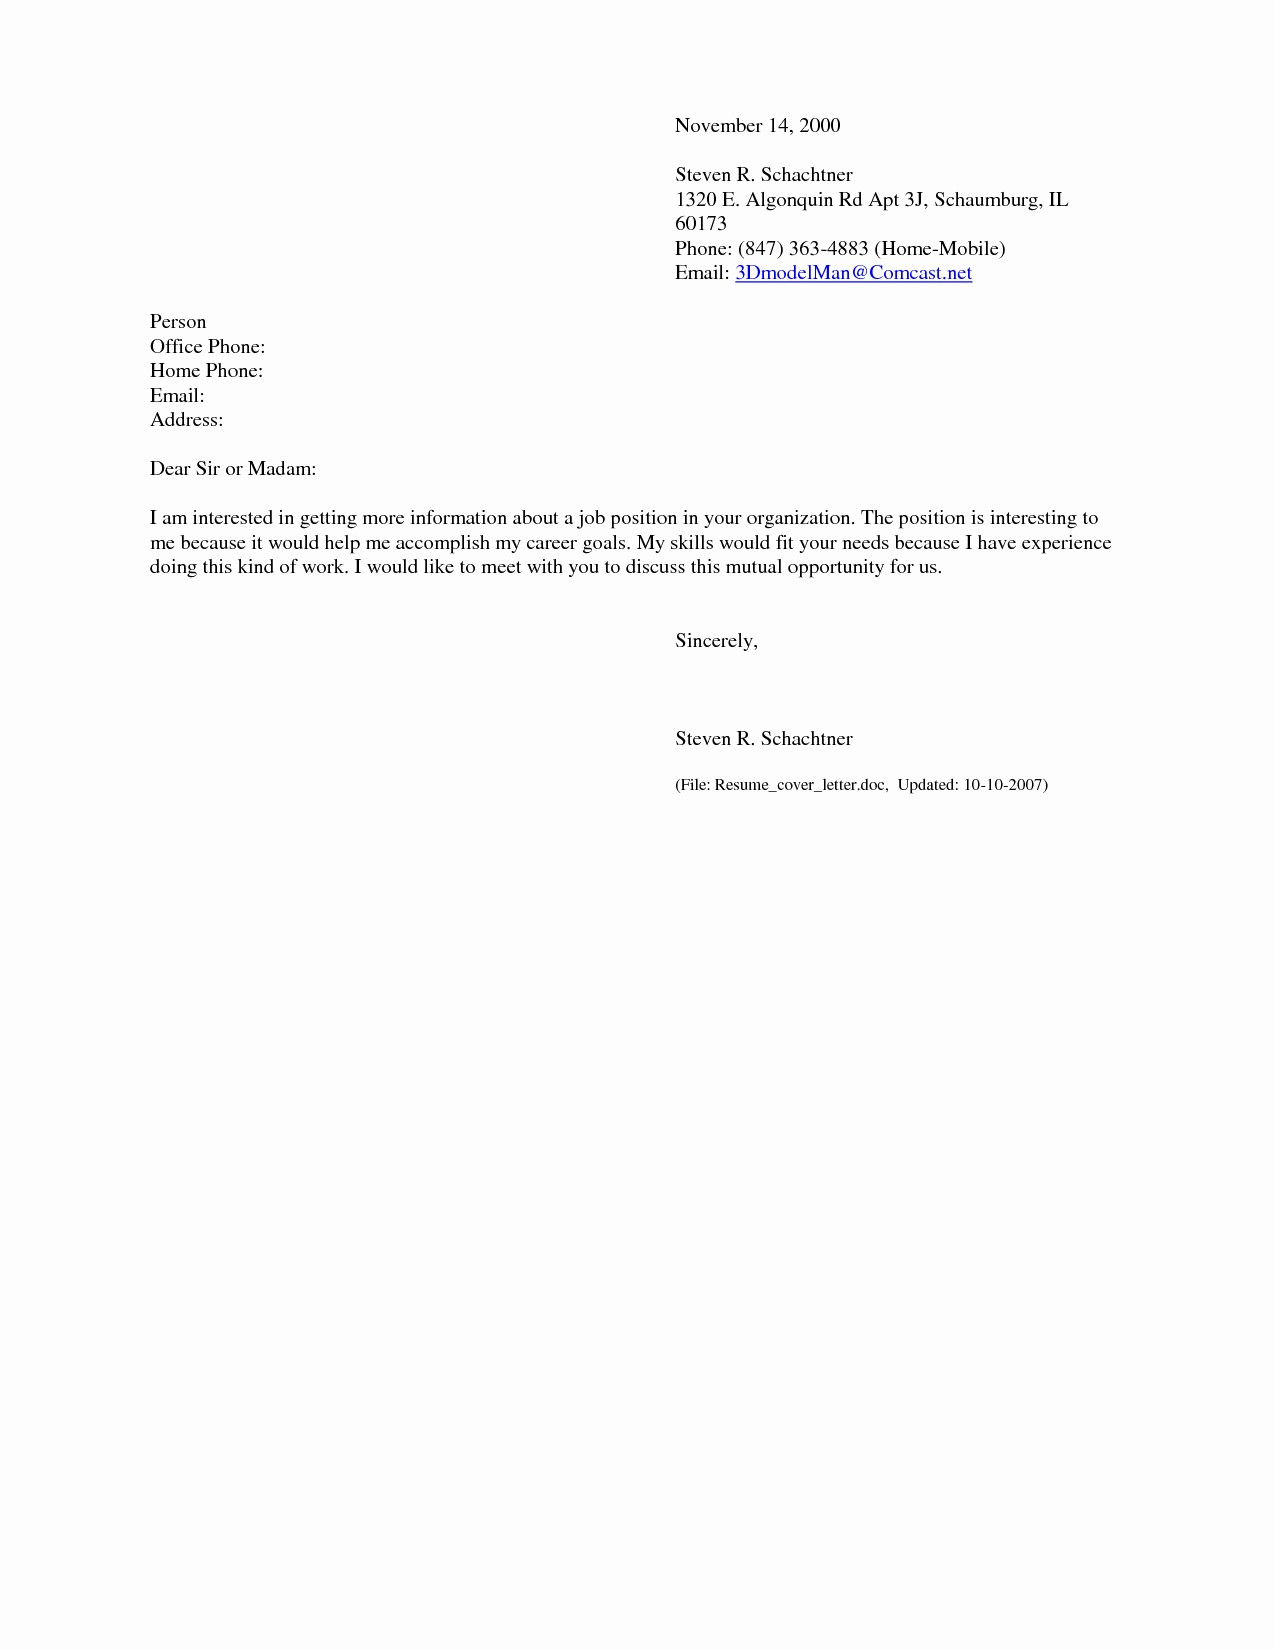 Easy Cover Letter for Resume Awesome Resume Templates Simple Emailover Letter for Sample with